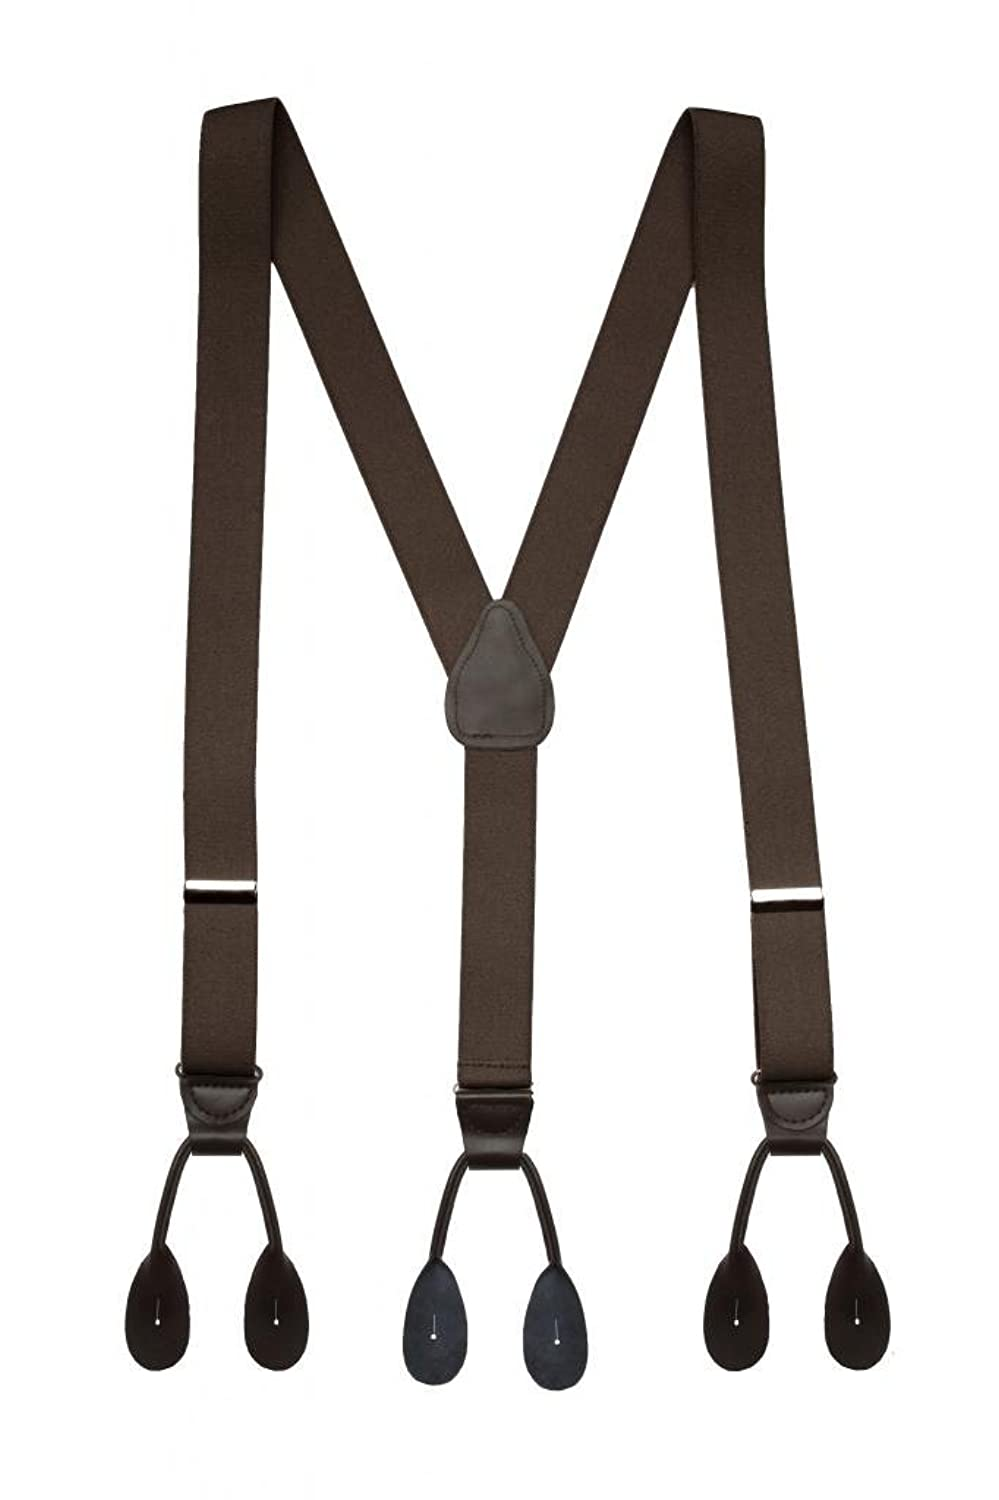 Men's Steampunk Clothing, Costumes, Fashion Suspenders Elastic Y-back Fully Adjustable Button end Suspender – Made in USA - With Genuine Leather Button Tabs and Crosspatch $23.99 AT vintagedancer.com